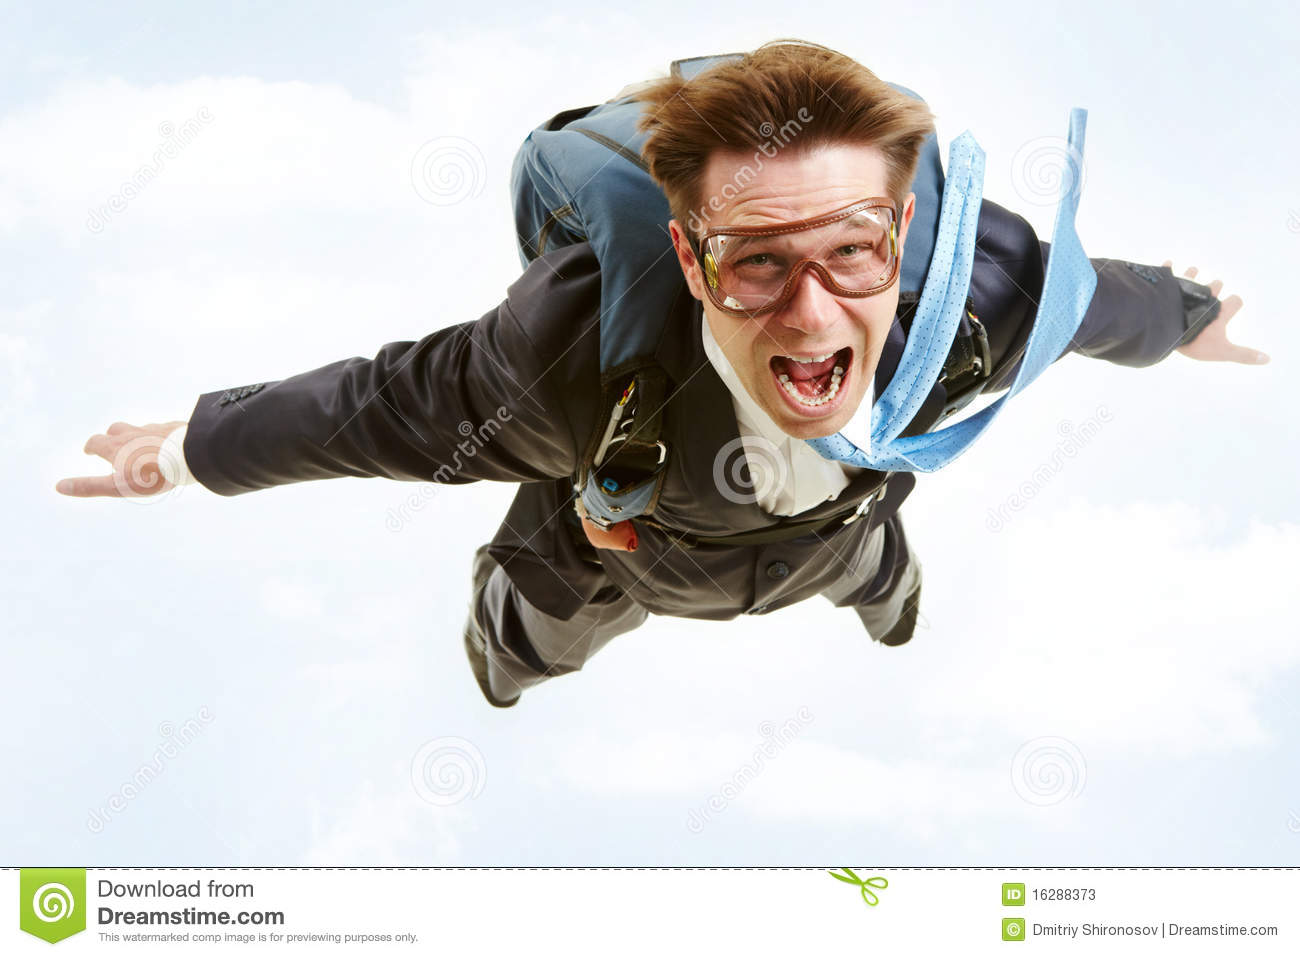 Conceptual image of young businessman flying with parachute on back.